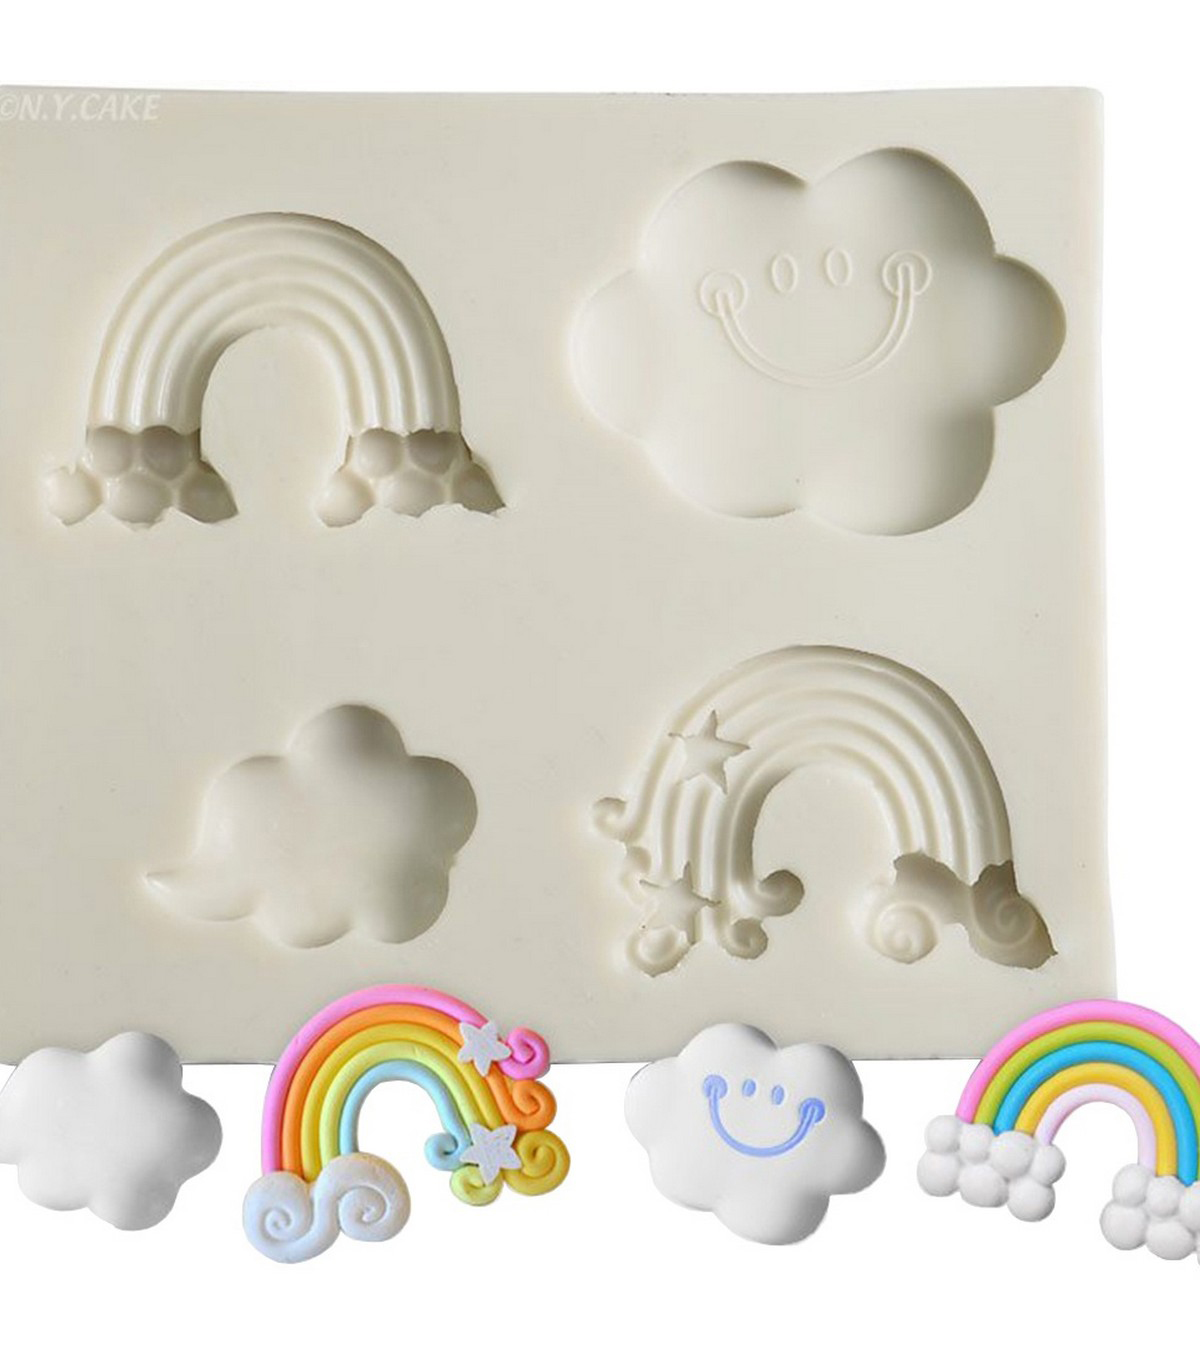 NY Cake White Silicone Mold-Clouds & Rainbow